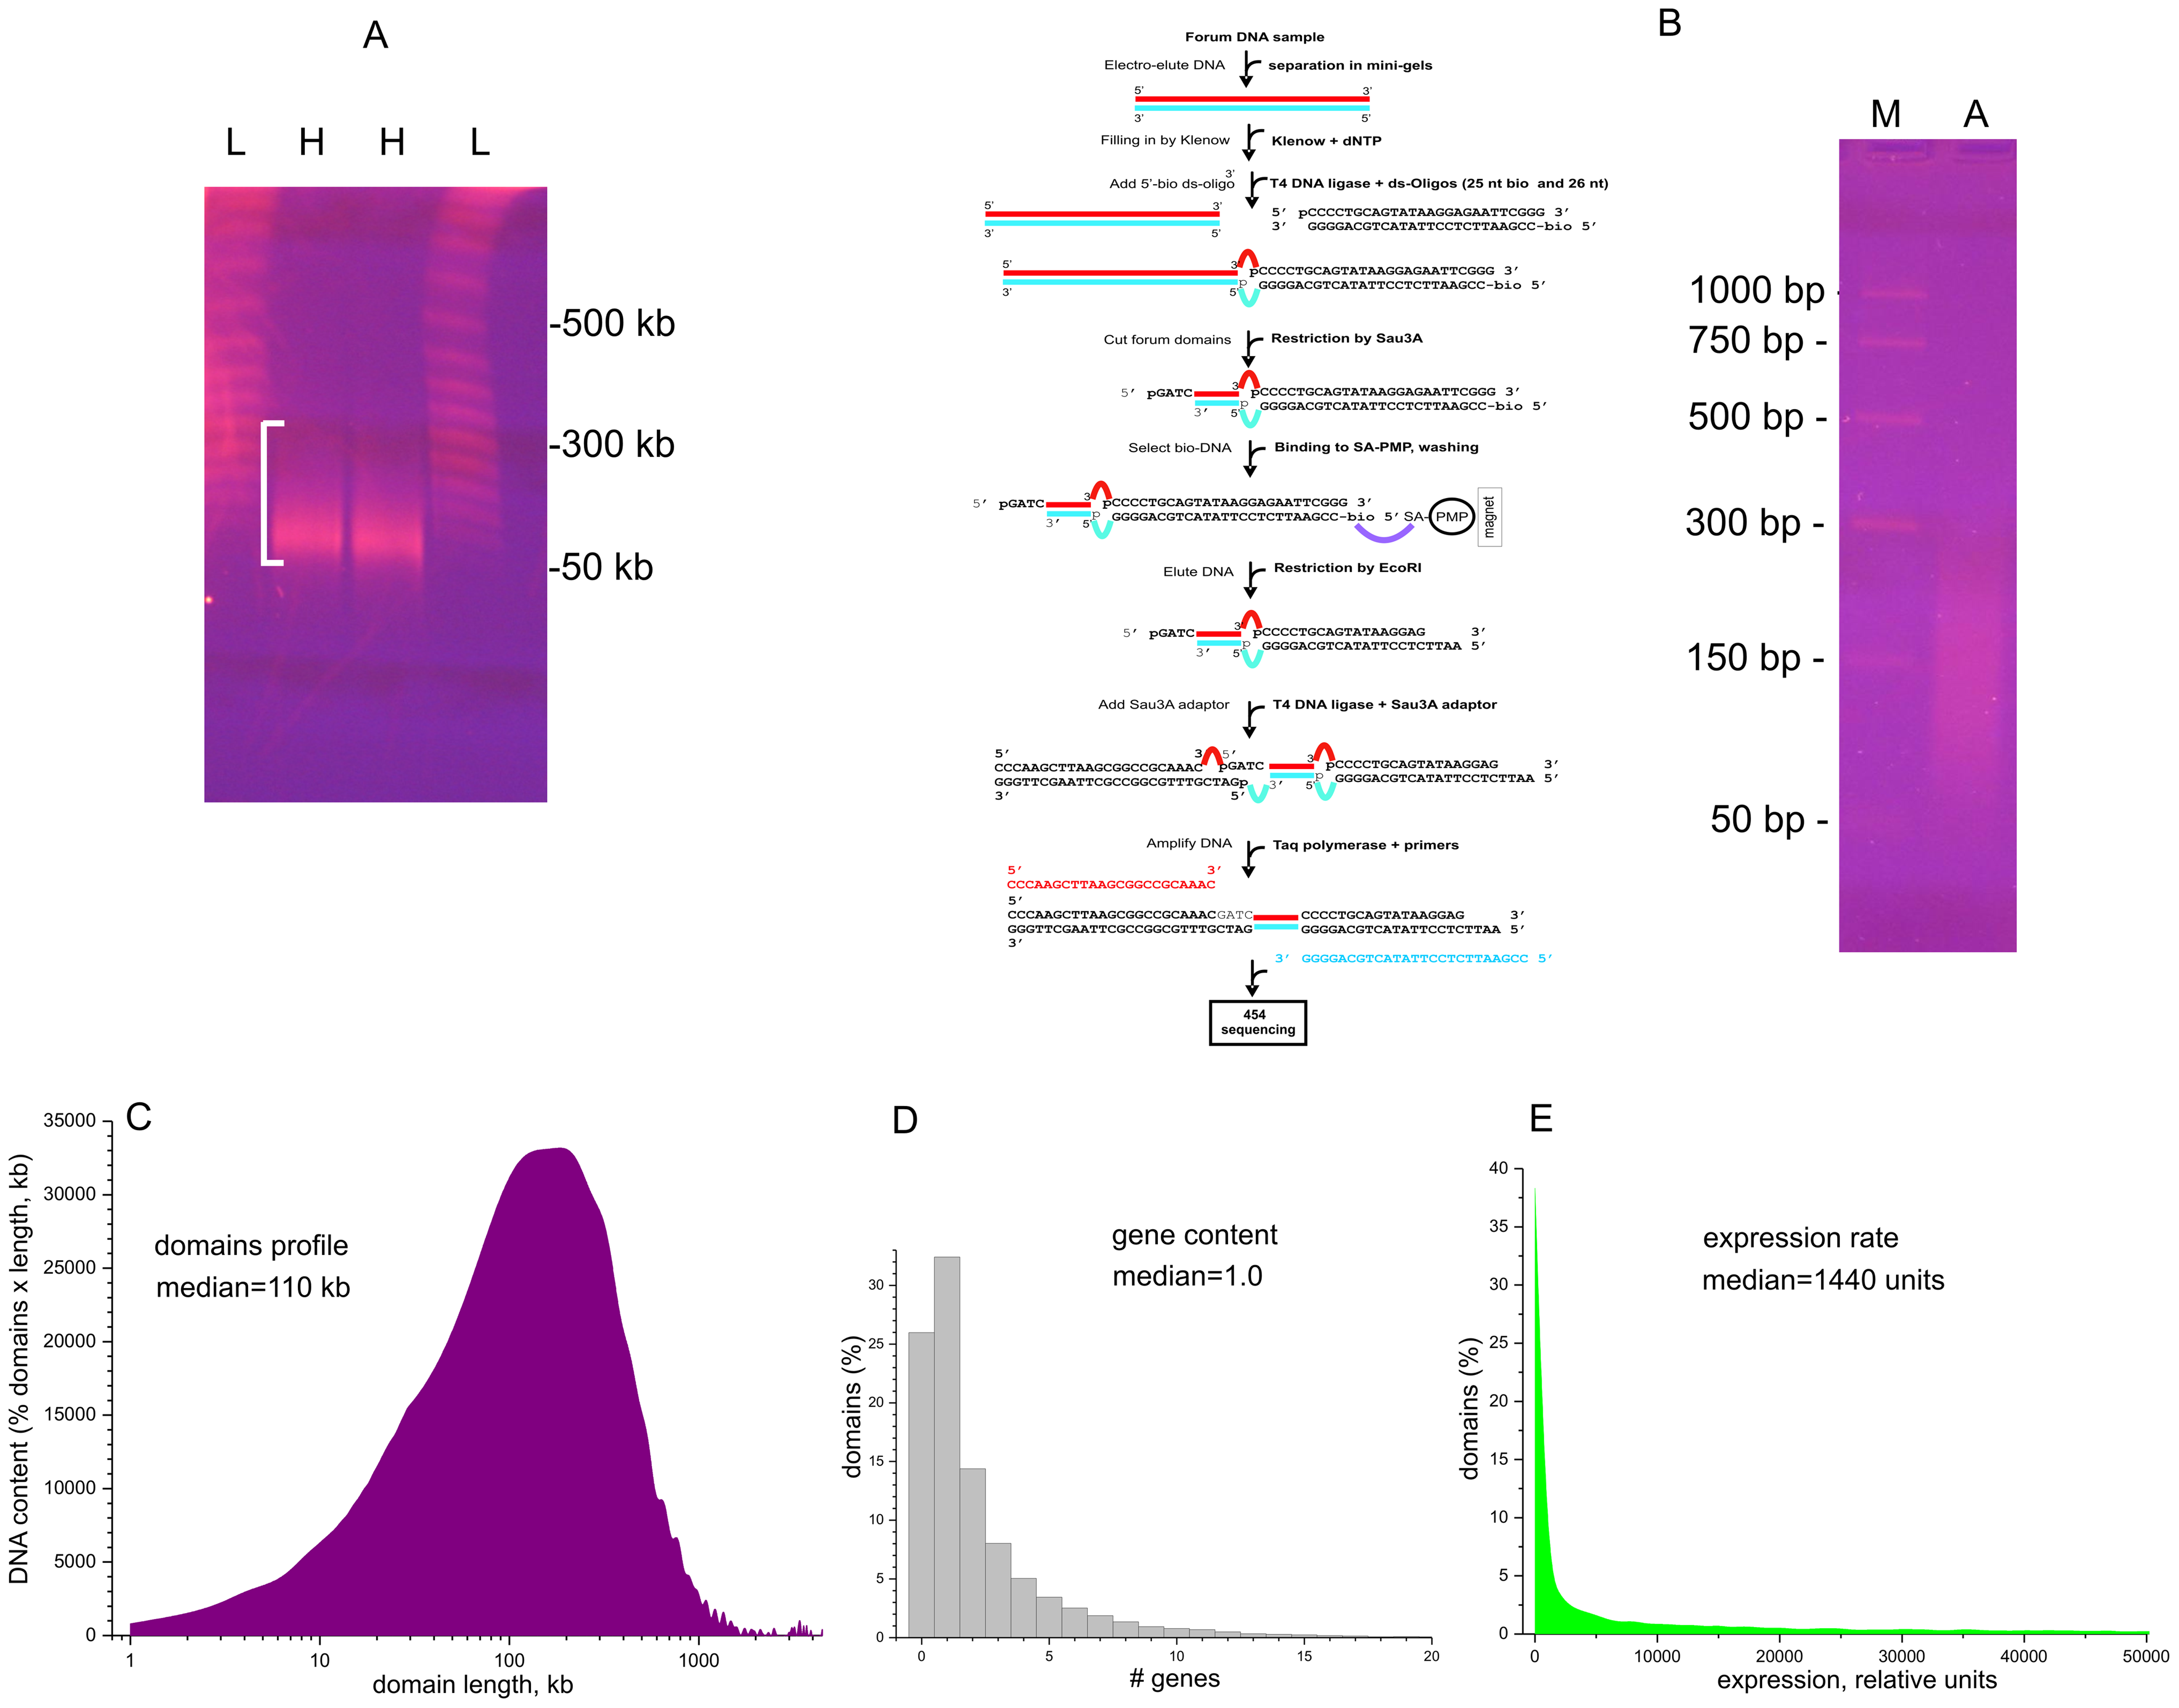 Isolation and amplification of terminal regions of forum domains and general properties of domains.